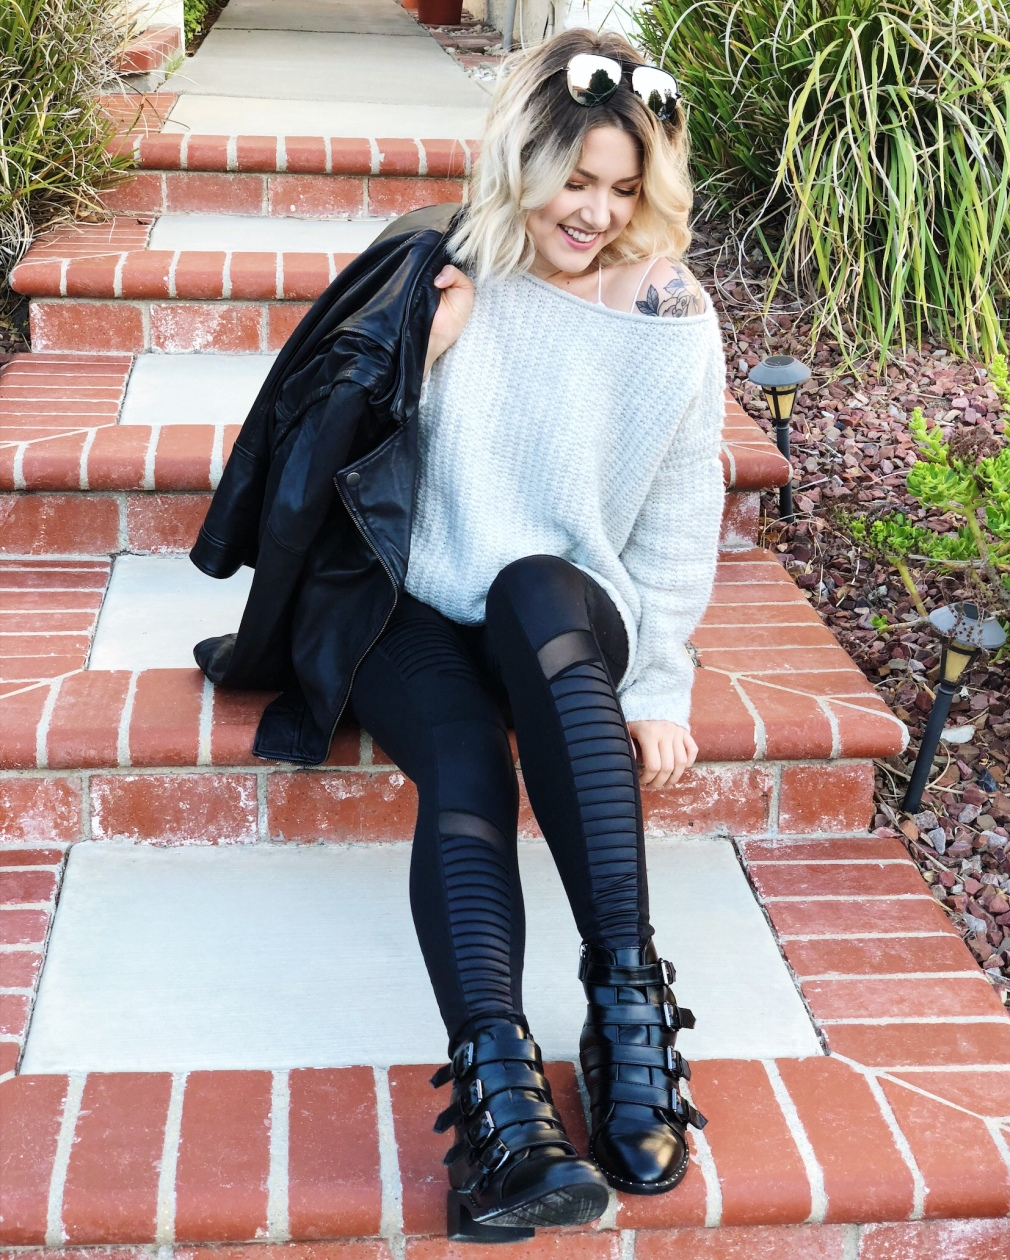 Blonde girl sitting on terra cotta steps, wearing grey off the shoulder sweater, black alo yoga moto leggings and black booties with buckles. She has a leather jacket over one shoulder and quay australia sunglasses on her head.